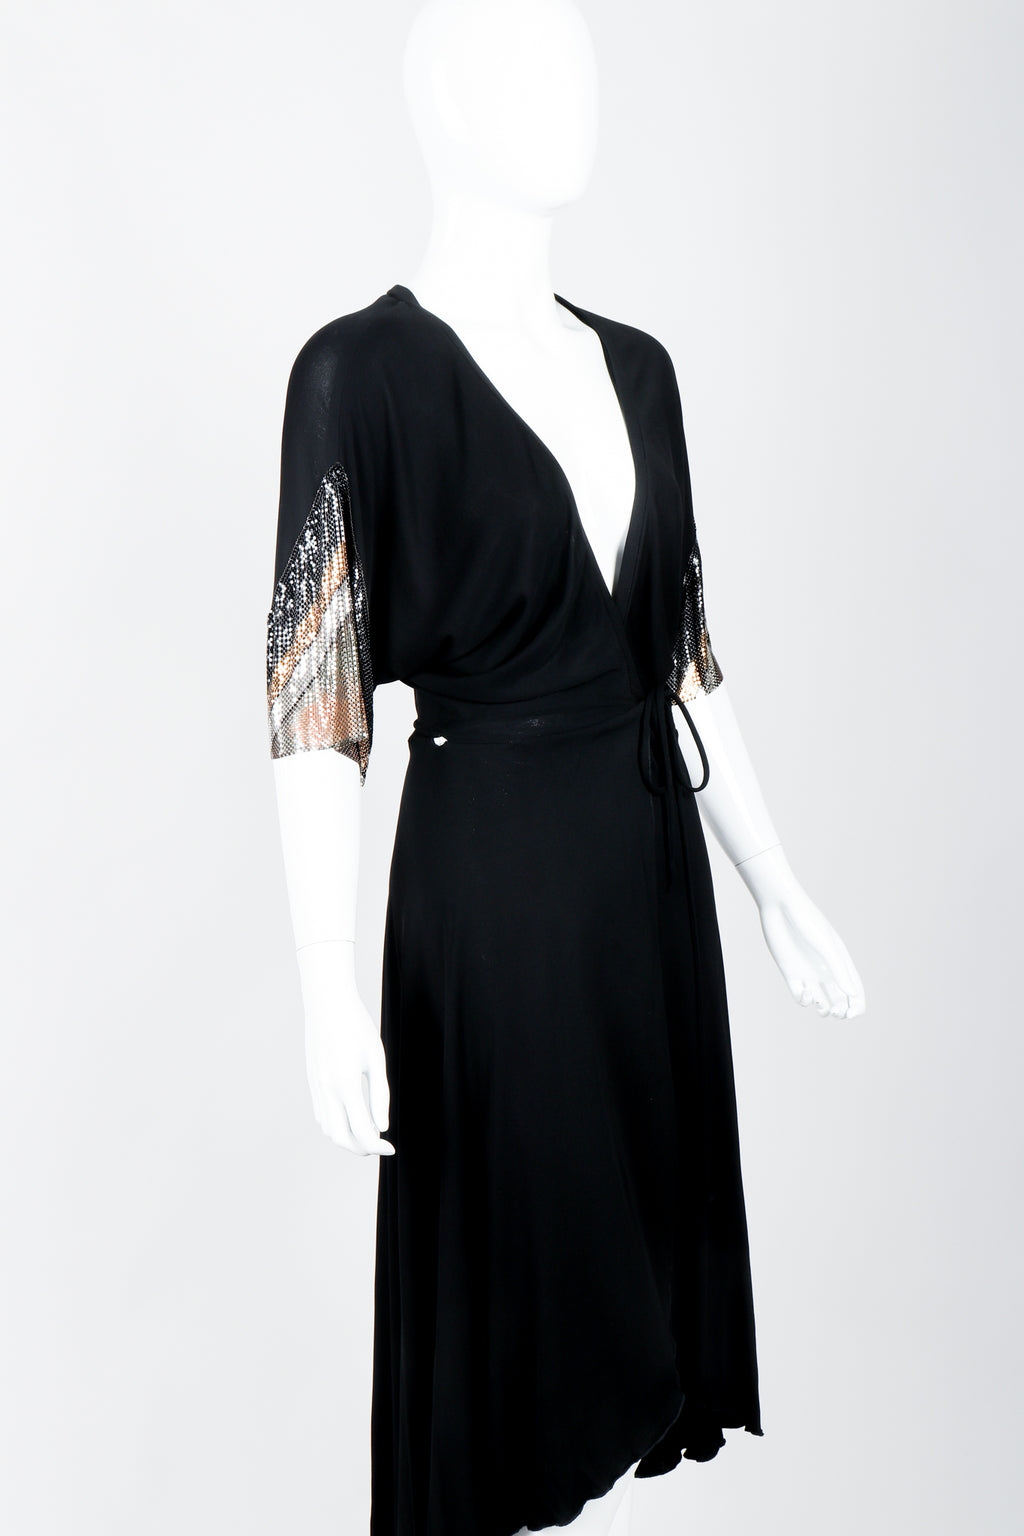 Vintage Anthony Ferrara Chevron Mesh Sleeve Wrap Dress on mannequin crop at Recess